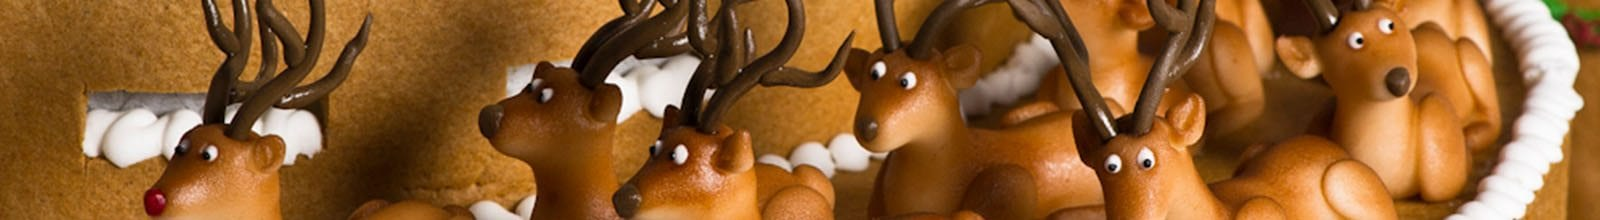 BLOG_holiday-inn-melbourne-on-flinders-christmas-bucketlist-gingerbread-village